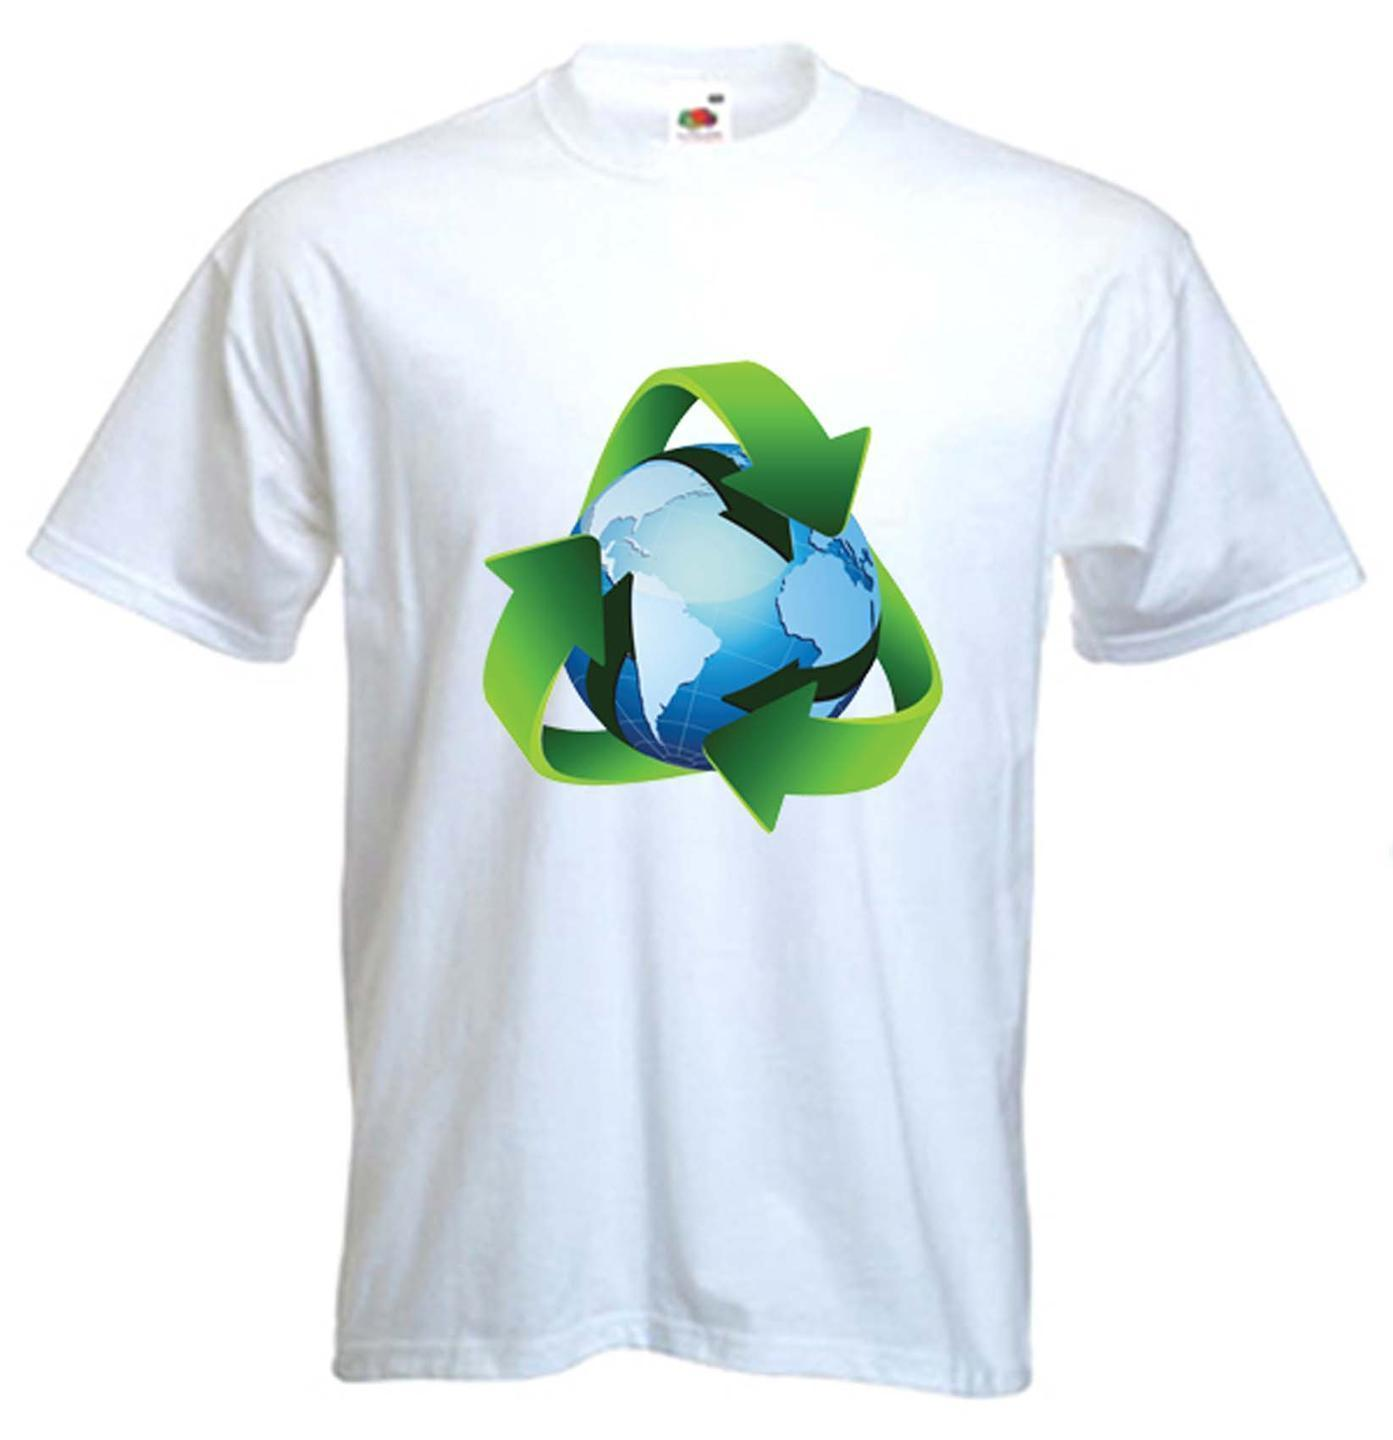 RECYCLE SYMBOL T-SHIRT - Recycling Green Earth Sign Environment - Size S to  XXXL